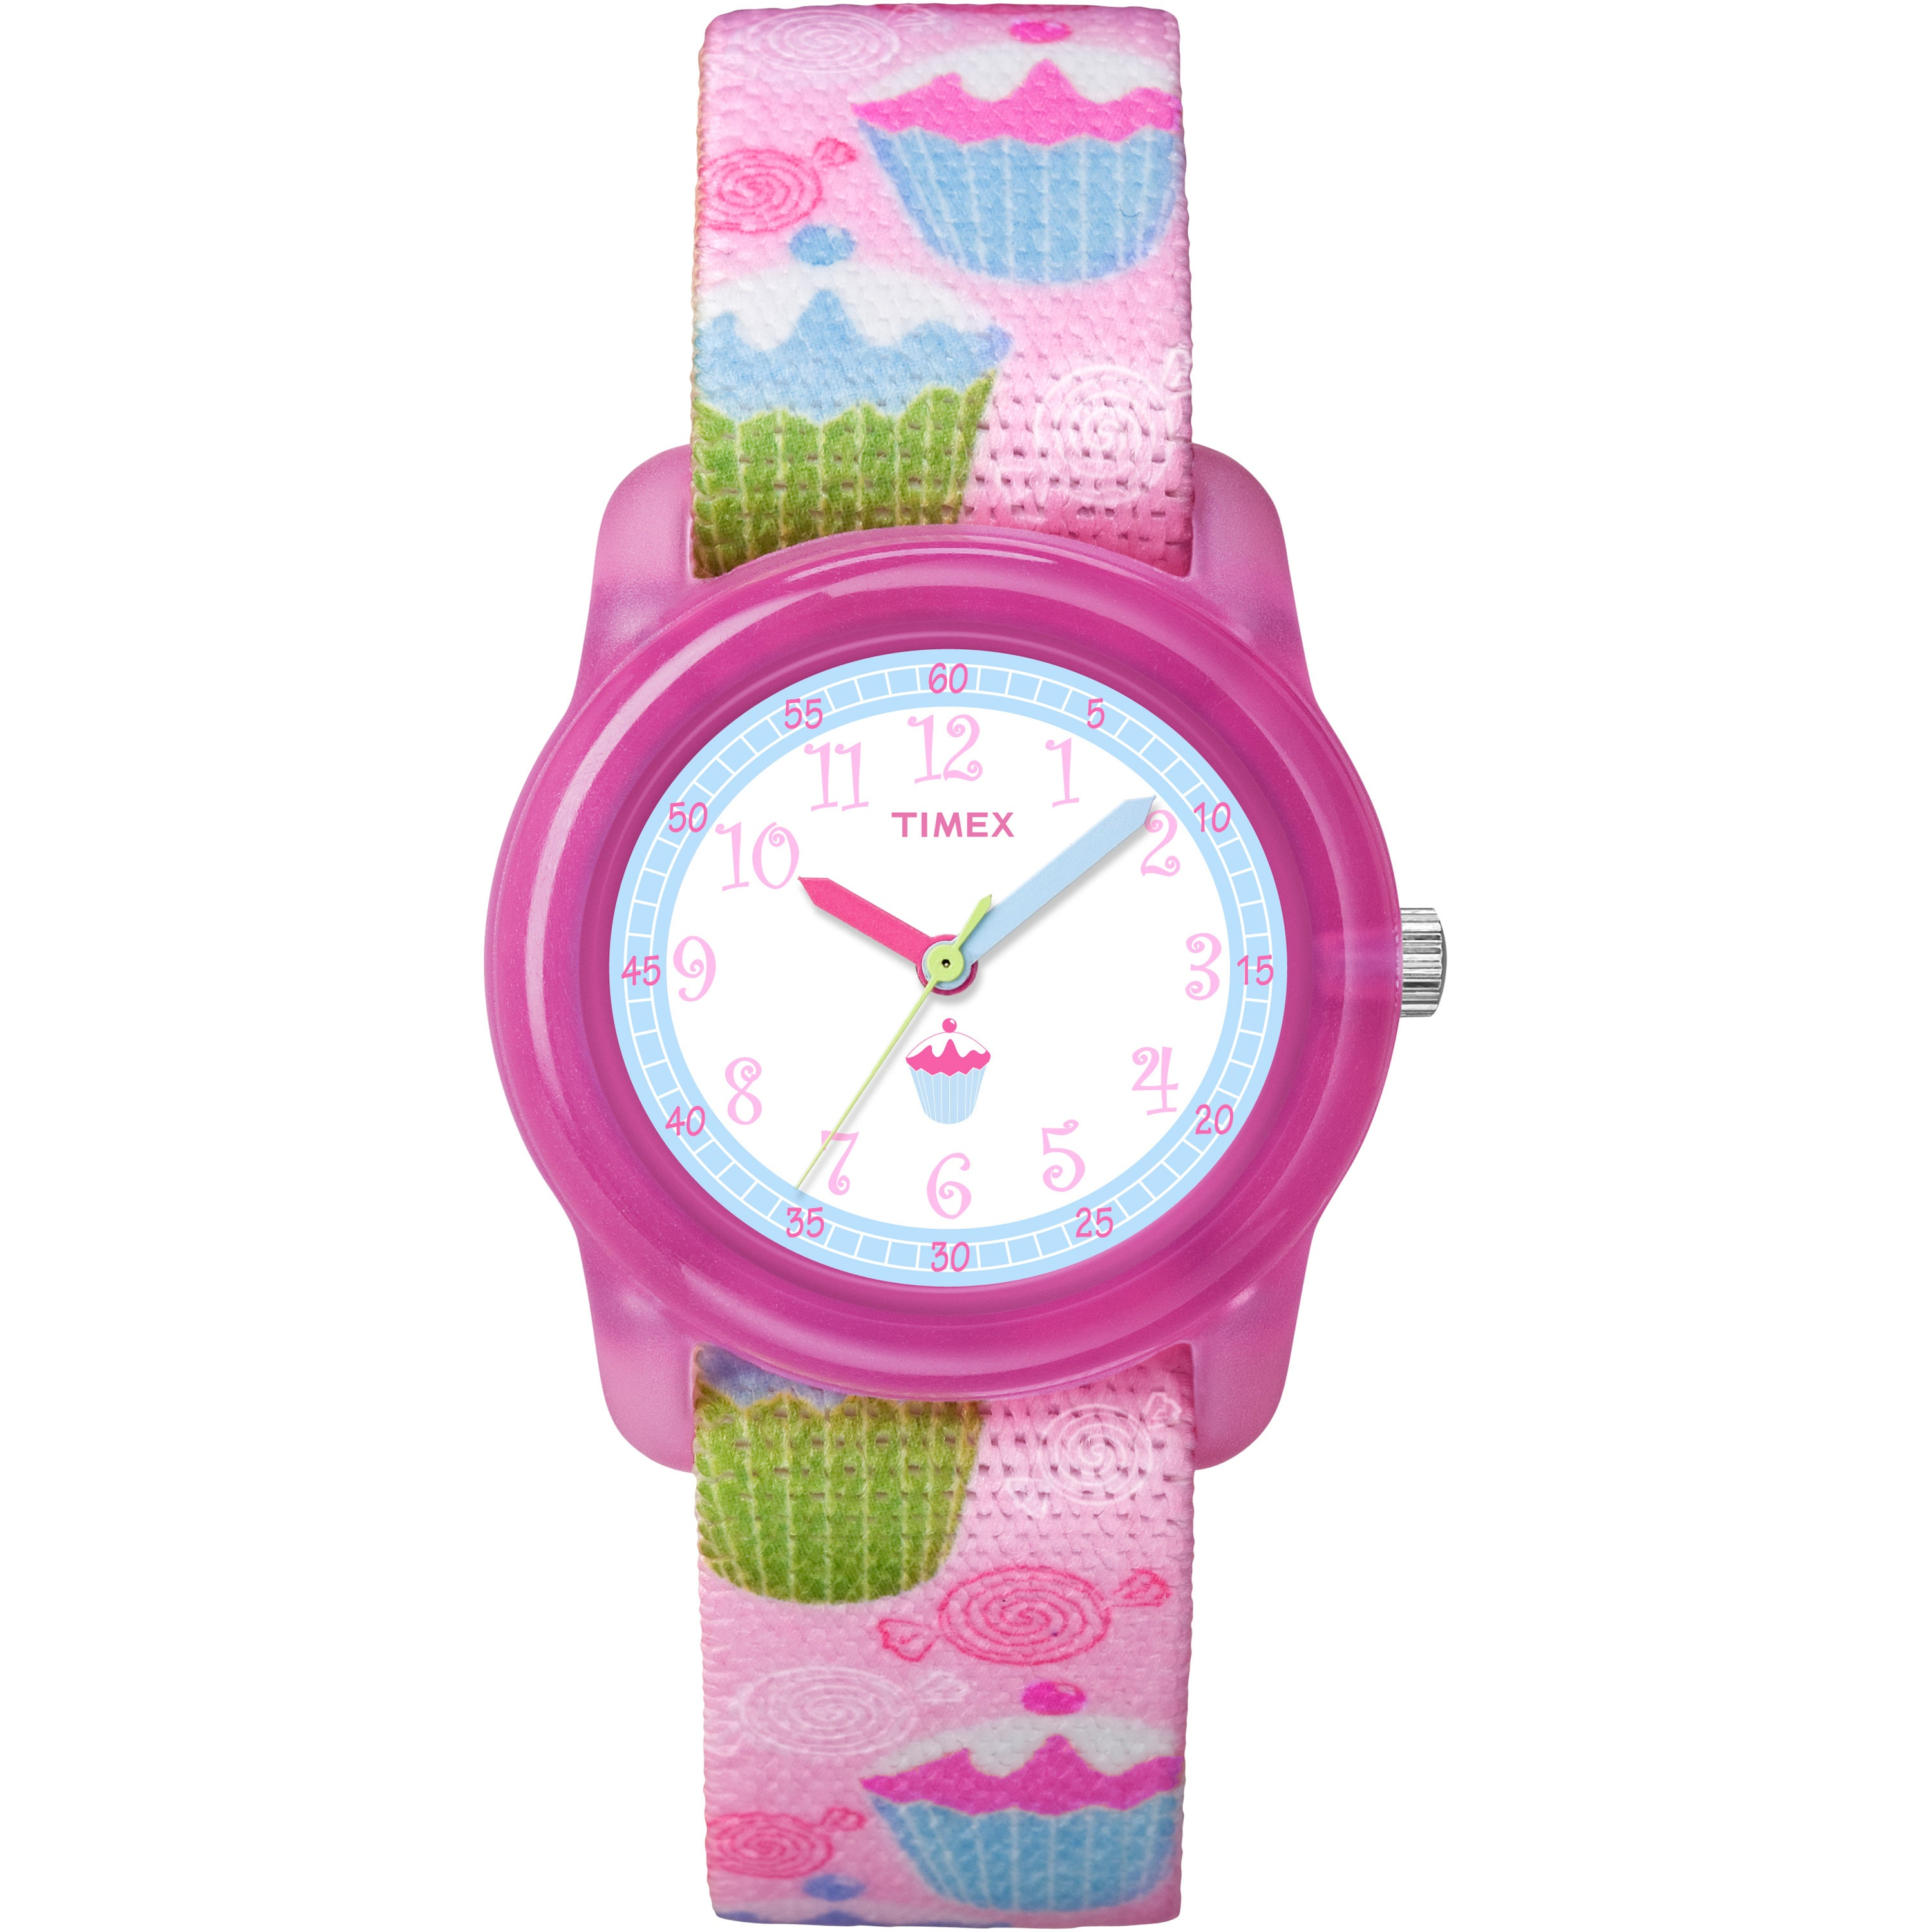 T89001 Kids Elastic Strap 16mm Timex Youth TW7B99500 /& More... Pink T89022 Orange /& Yellow Floral Design Band Fits Timex T7B151